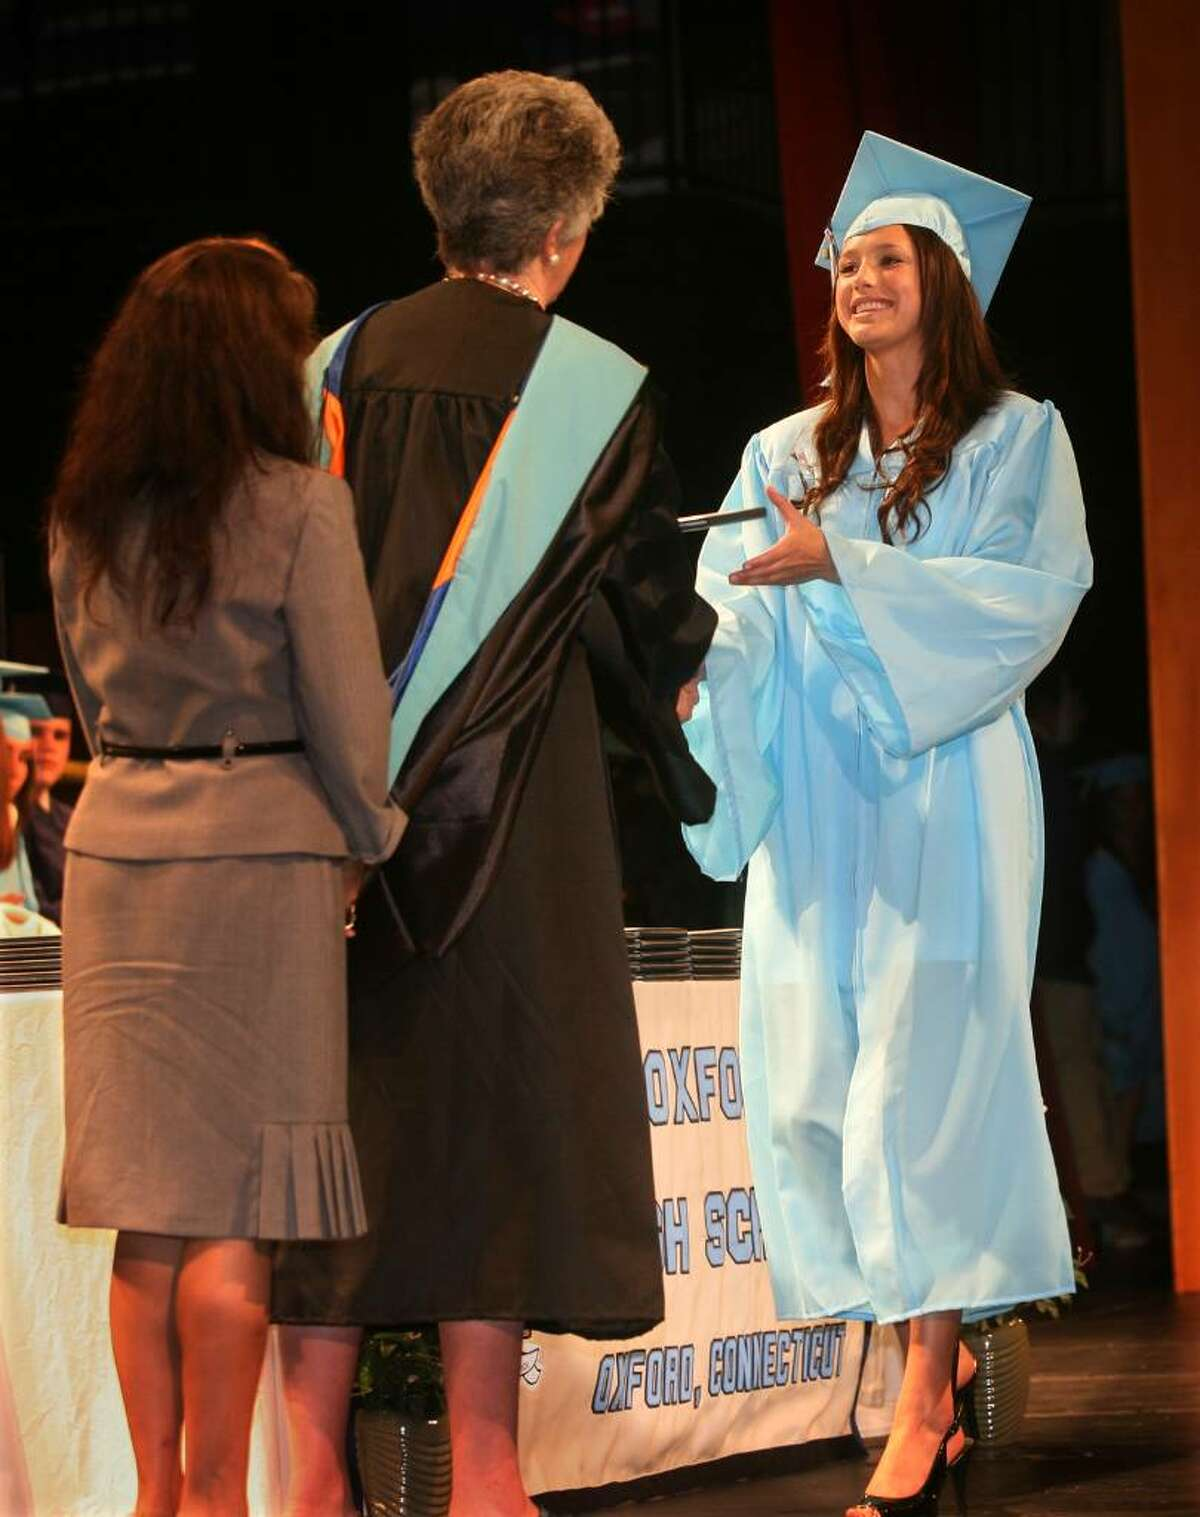 Meliisa Babina, right, receives the very first diploma ever from Oxford High School and Superintendent Judith Palmer at the school's inaugural graduation on Monday, June 21, 2010.